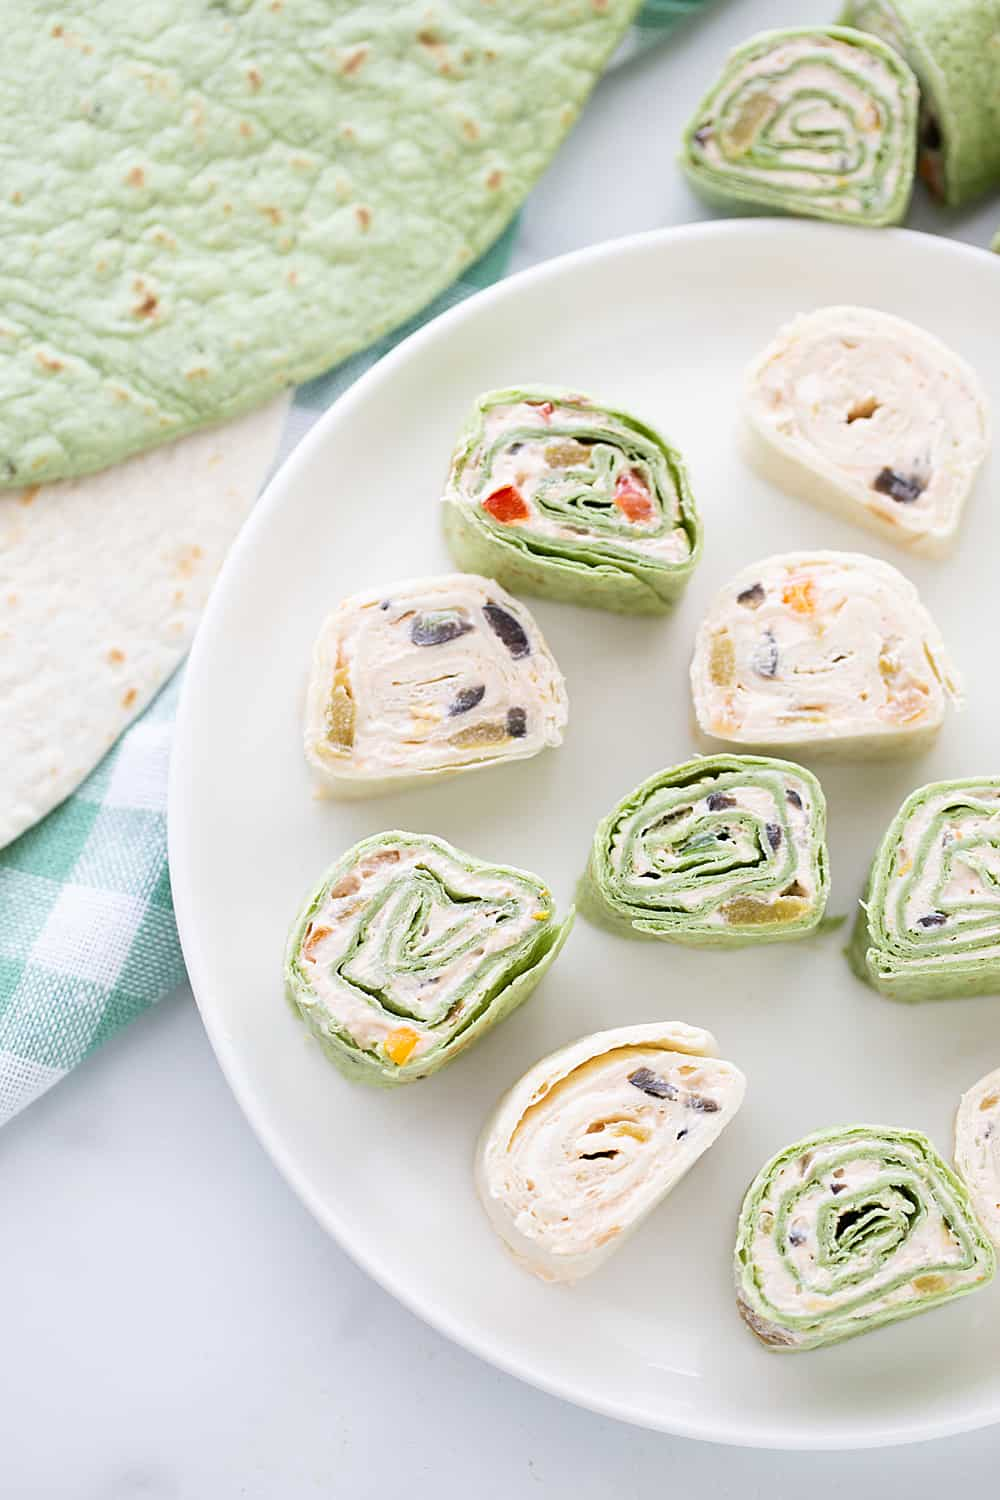 Mexican Pinwheels - Mexican pinwheels are the best appetizer! They're so eays and so flavorful. And even better, you can make them a day ahead! #appetizer #halfscratched #pinwheels #appetizerrecipe #partyfood #easyrecipe #easyappetizer #creamcheese